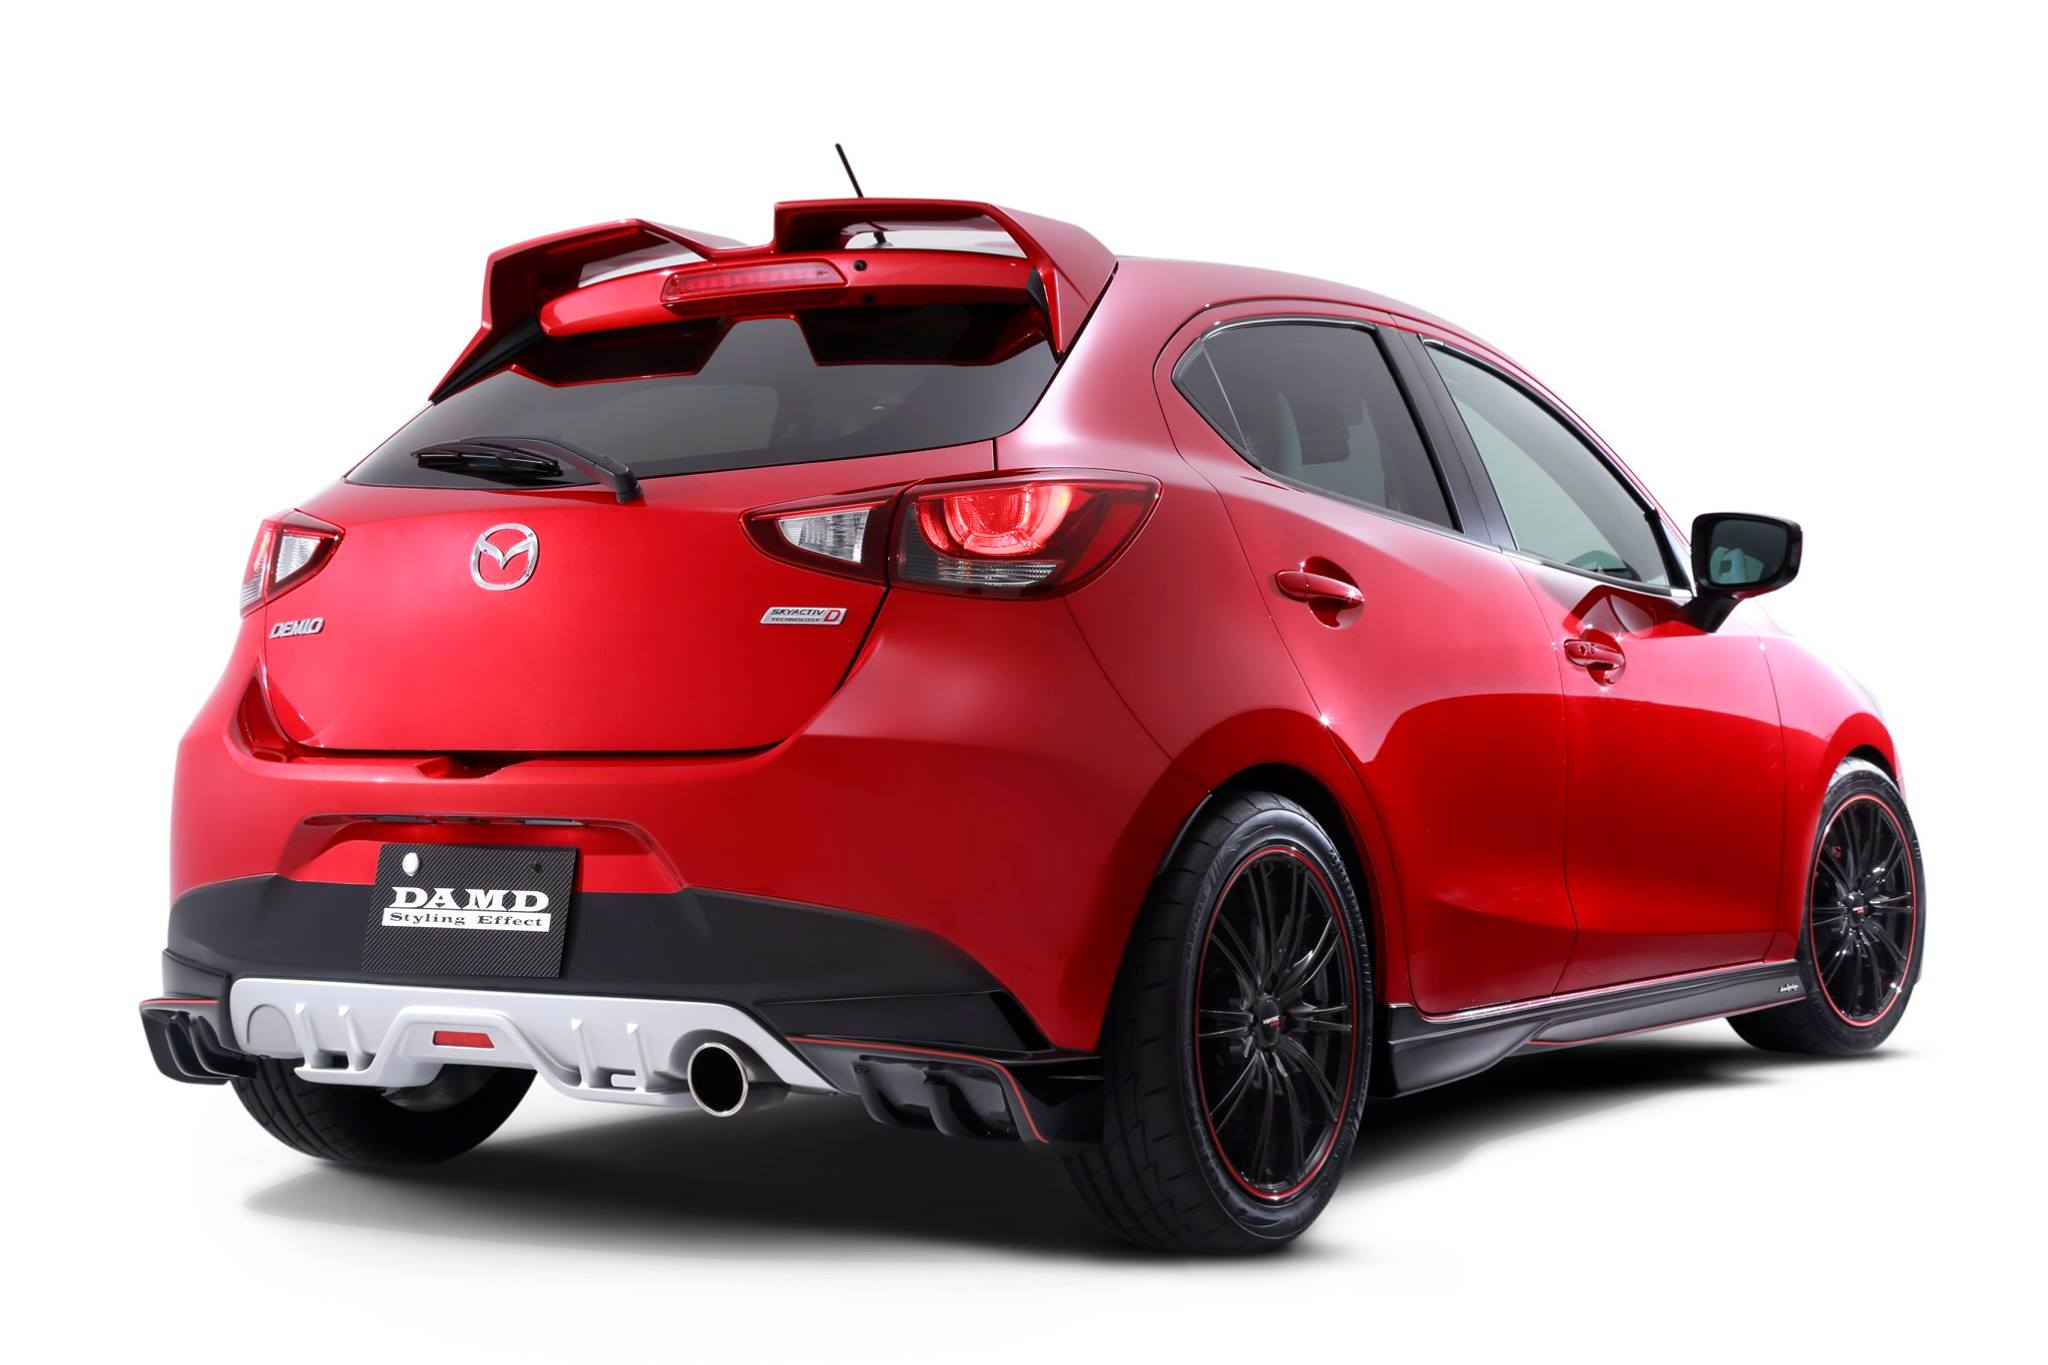 2016 mazda2 and cx 3 get aggressive body kits from damd in japan autoevolution. Black Bedroom Furniture Sets. Home Design Ideas